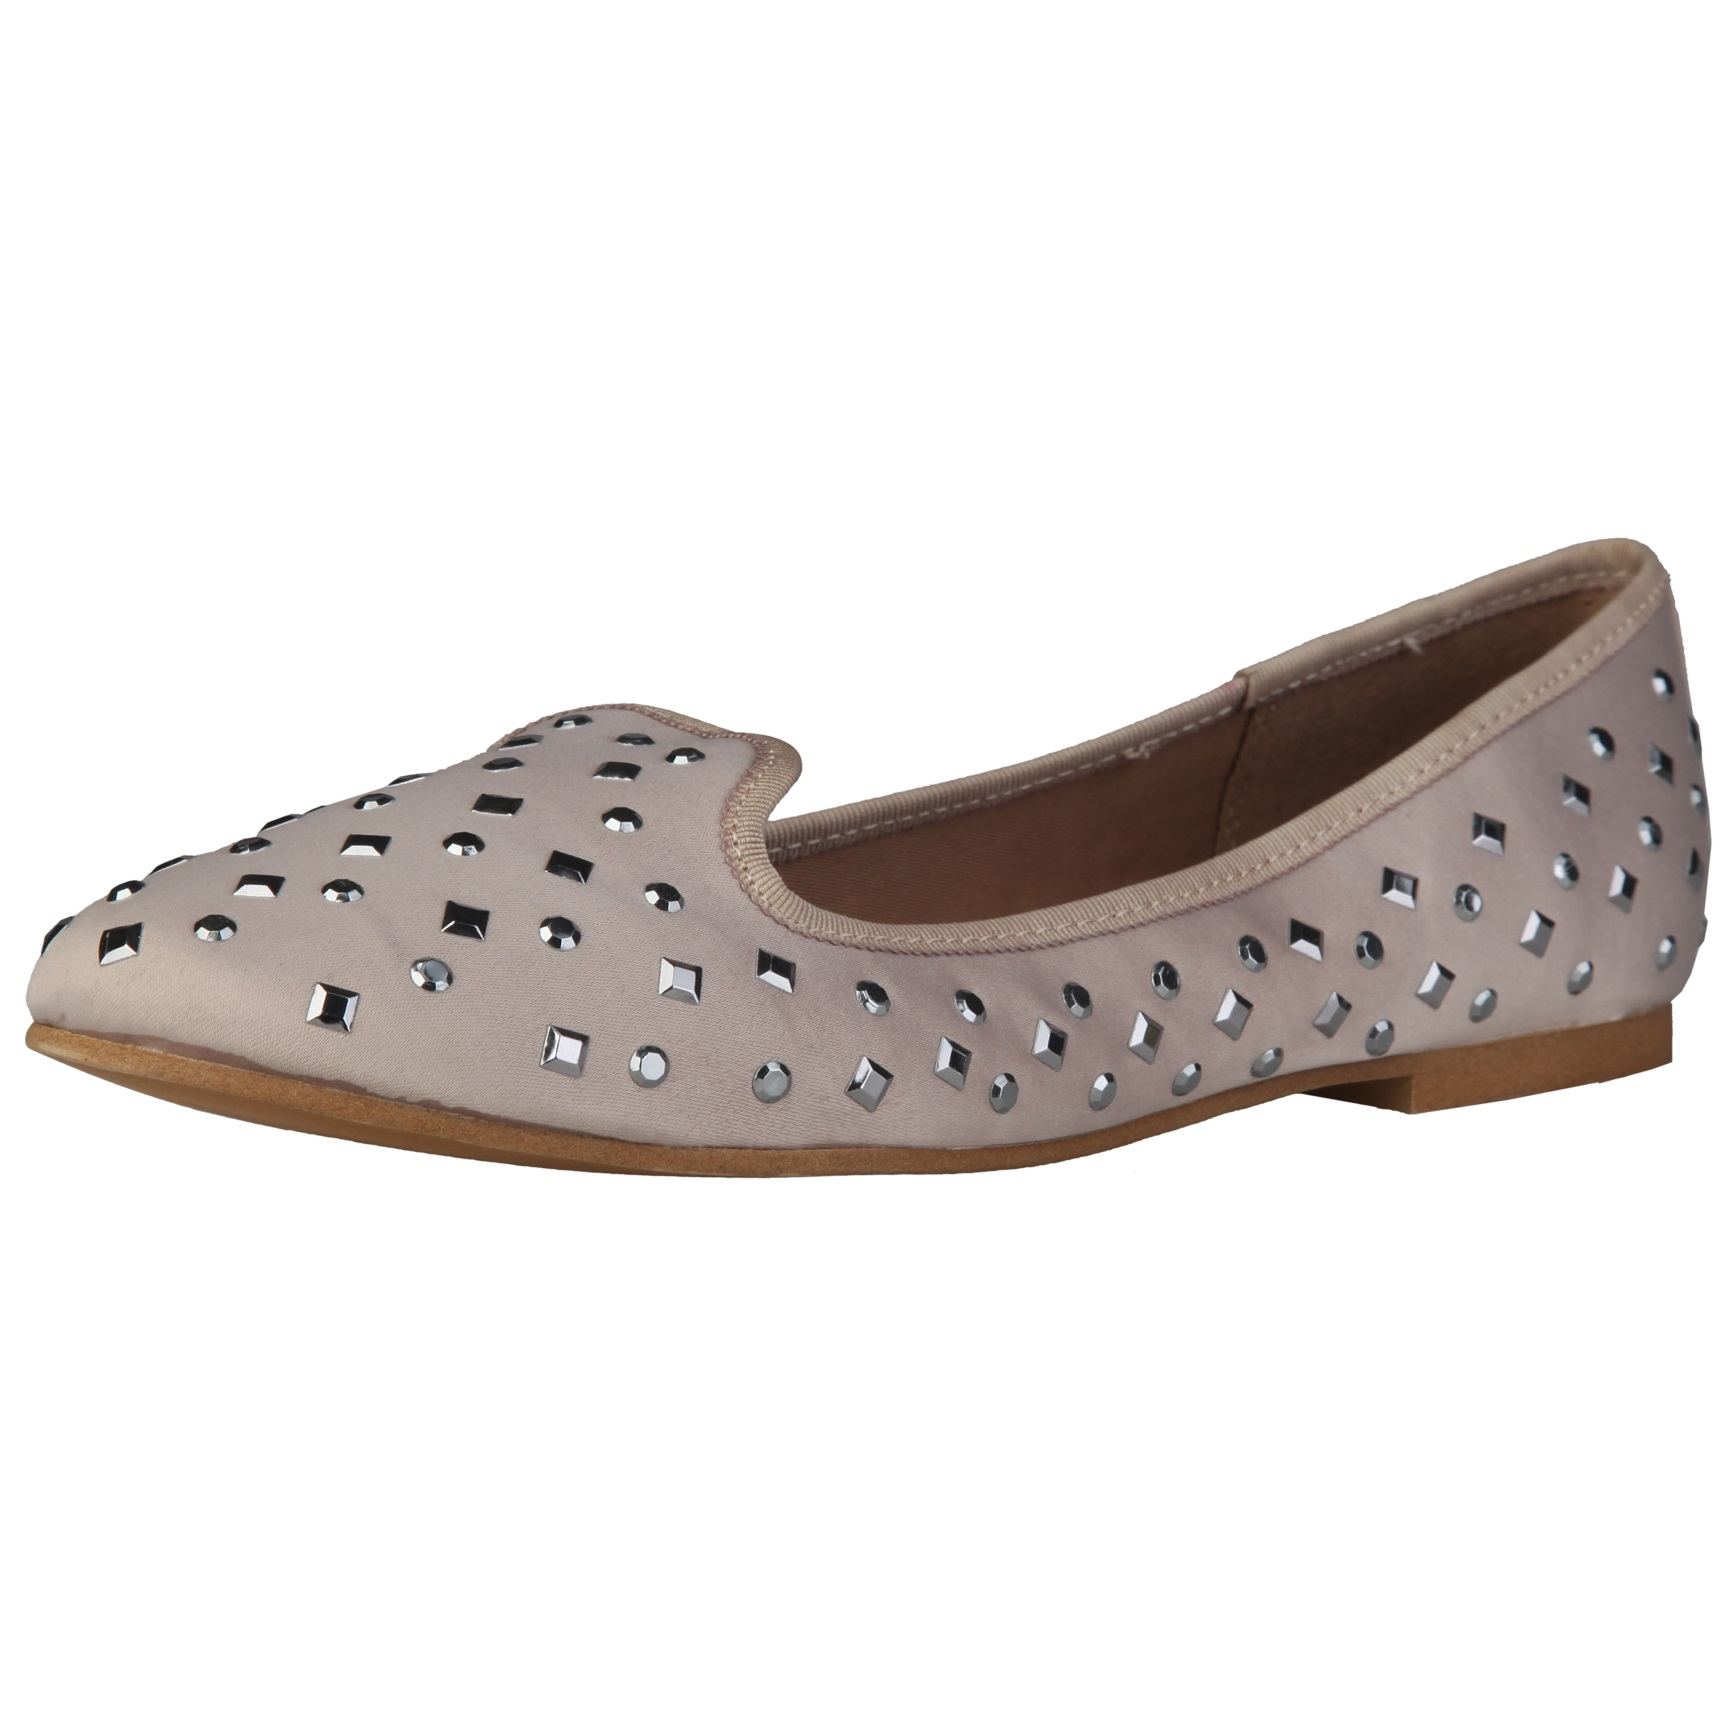 Sofia Loes Flat Shoes Beige Rf600351